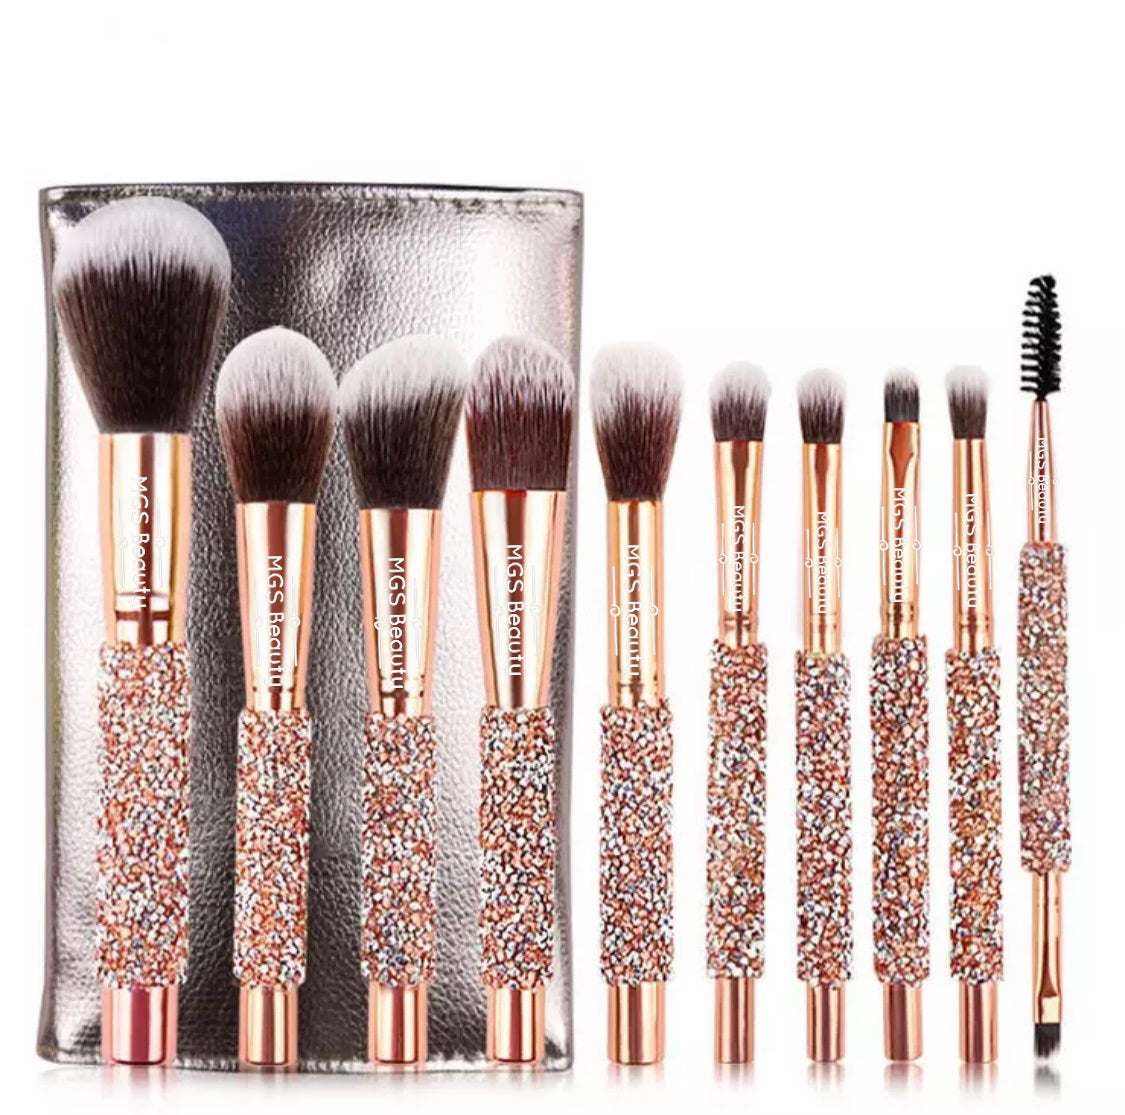 10 Pieces Rose Gold Diamond Brush Set With Storage Bag